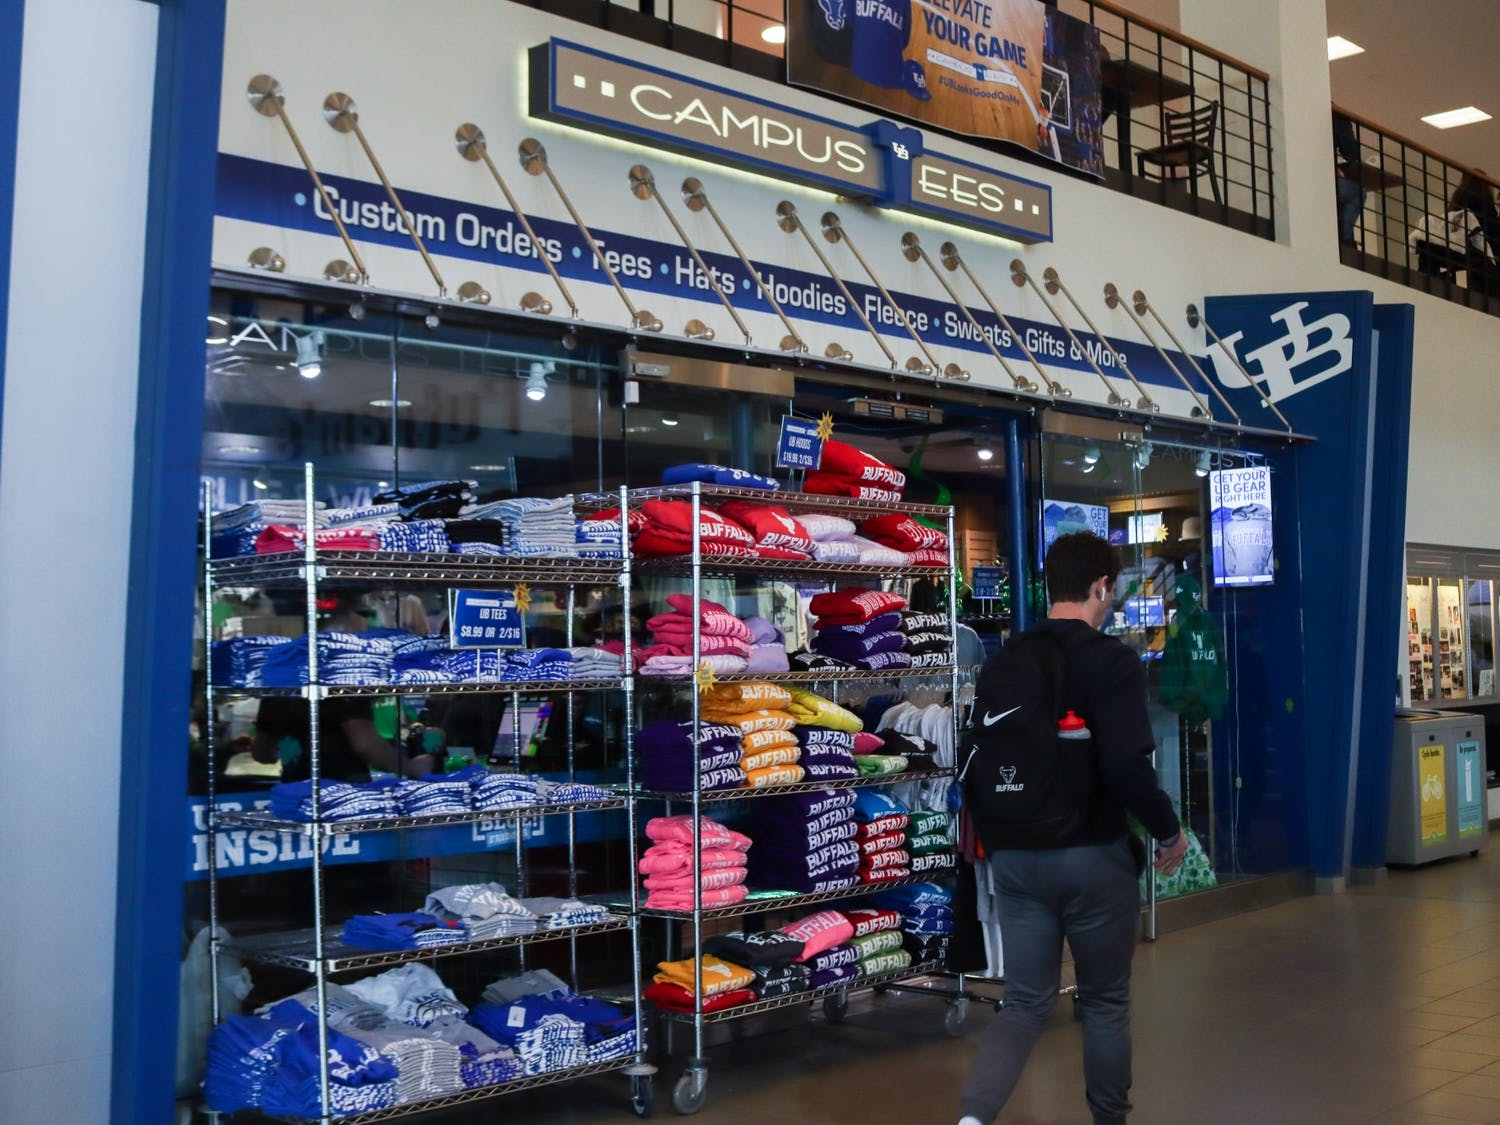 The Campus Tees store in the Student Union.